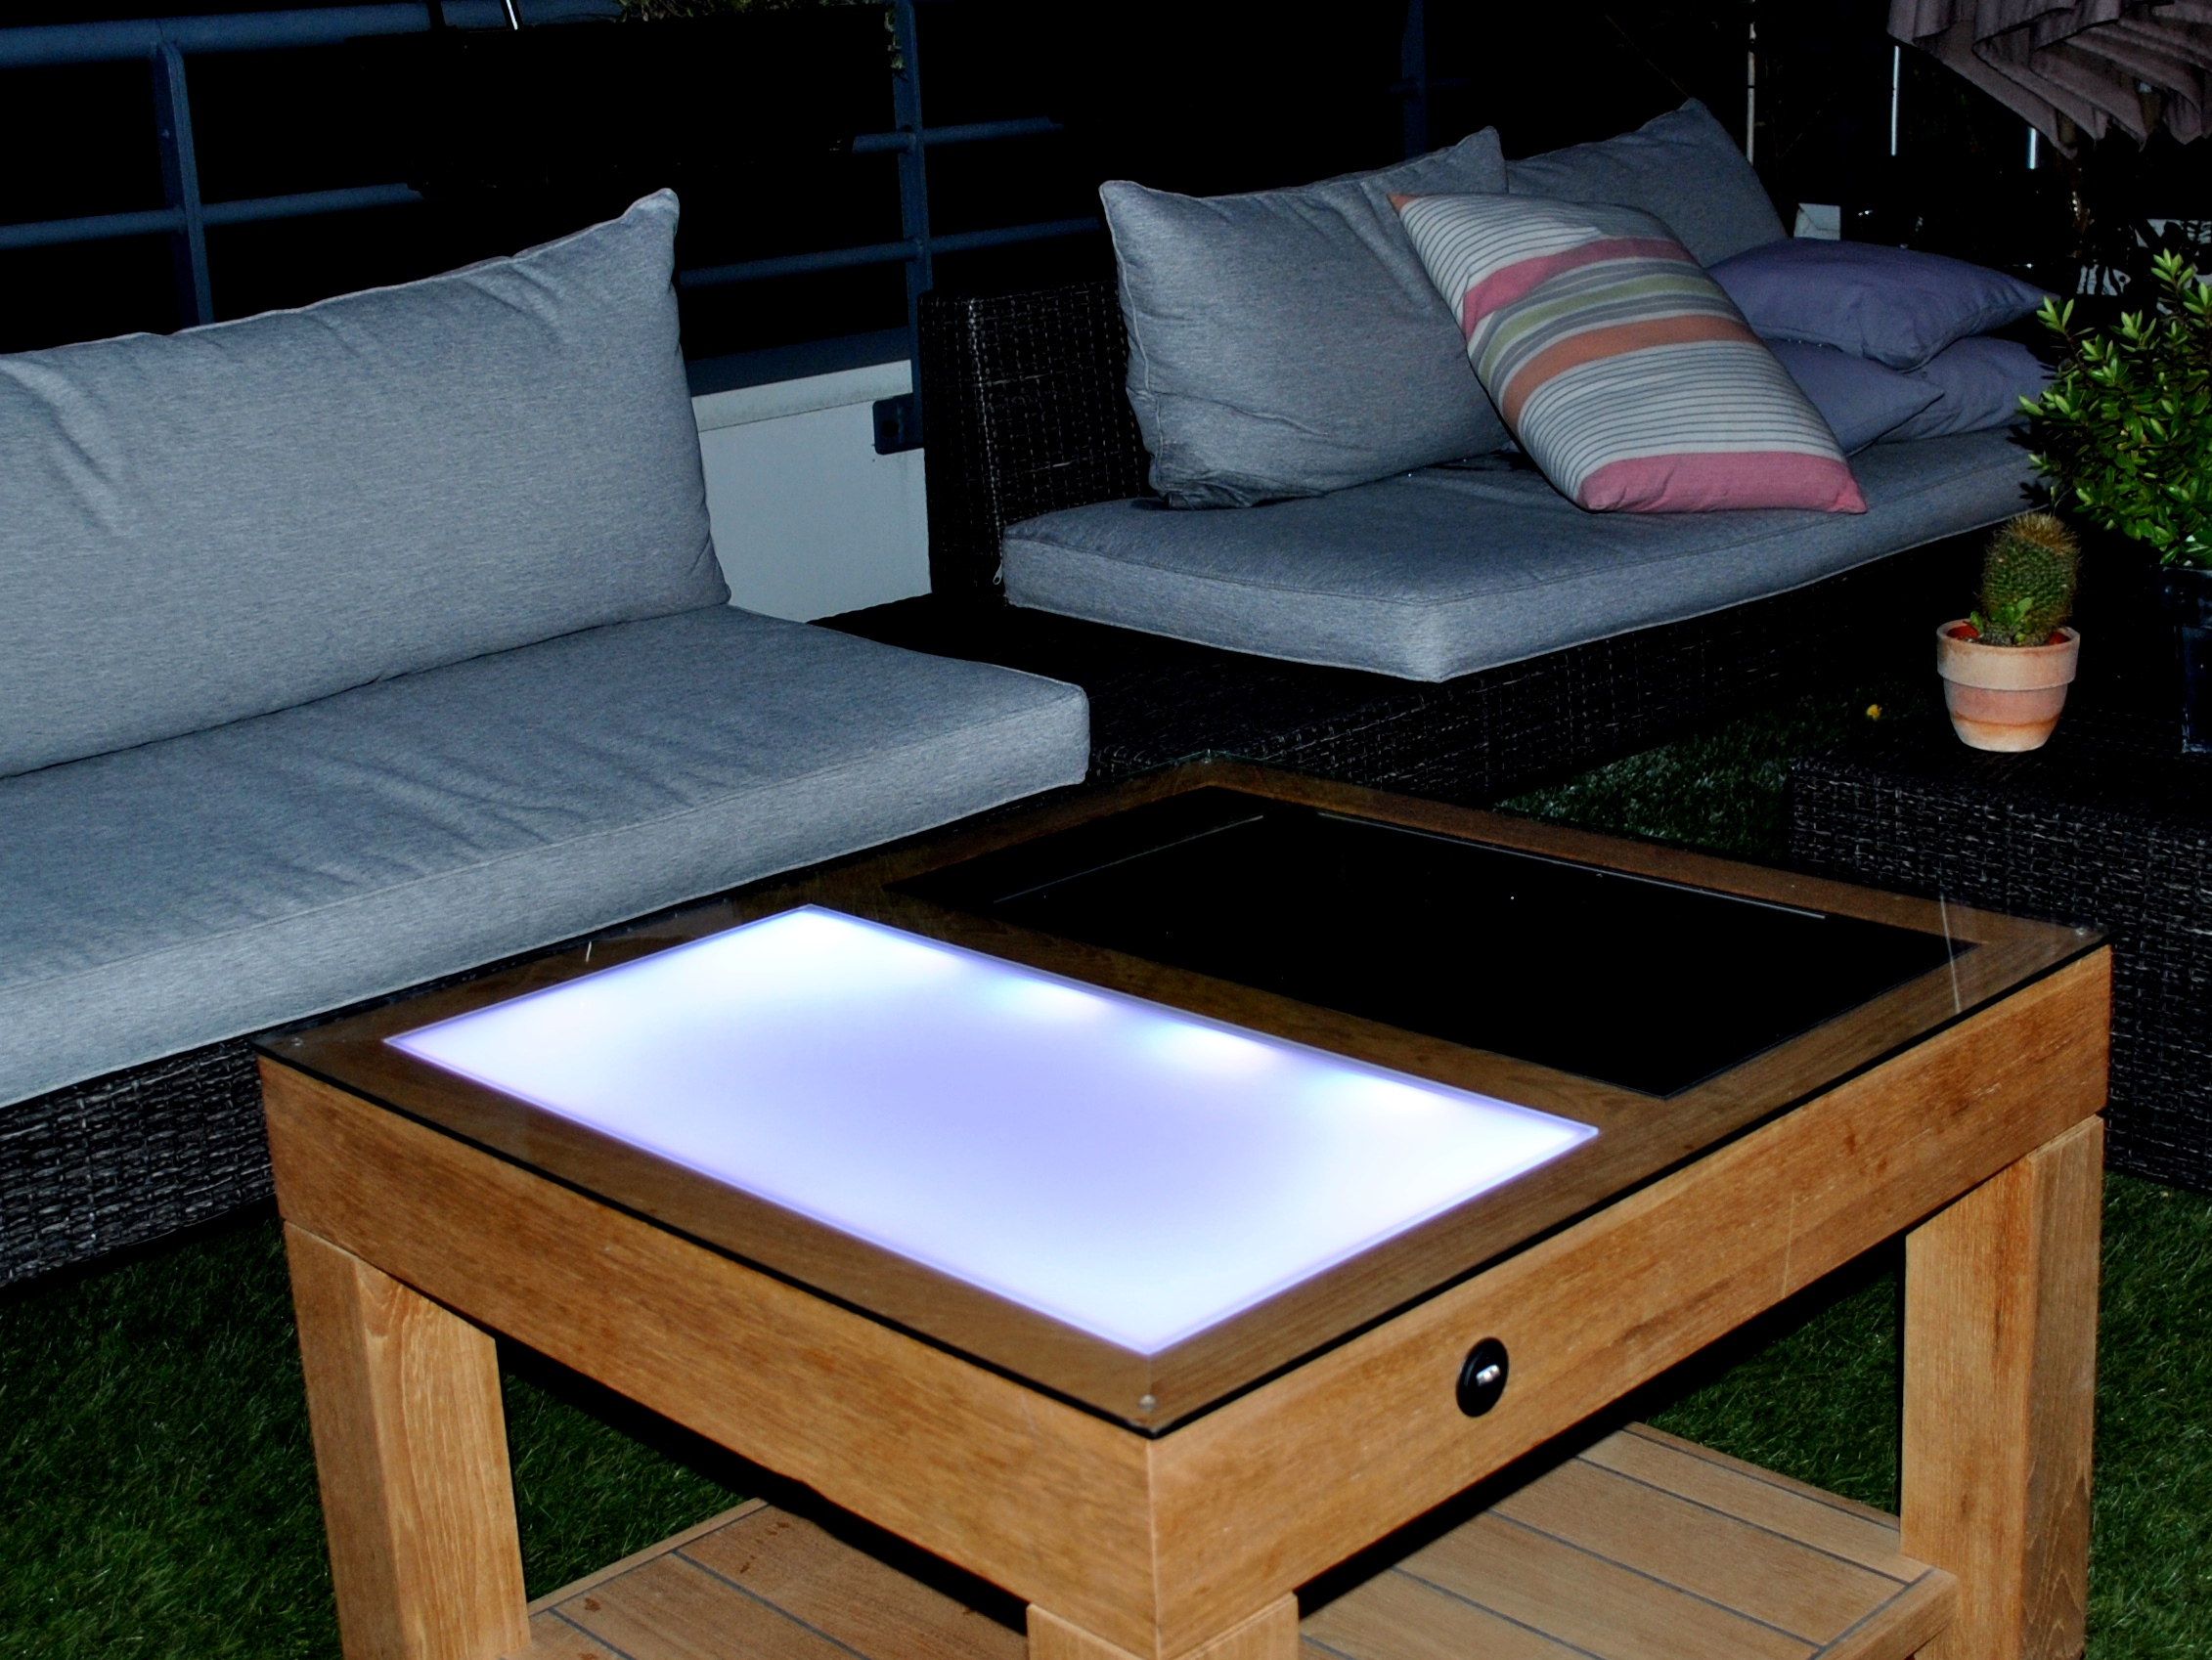 solar; solar table; solaire;table solaire;table solaire batterie;table autonome;look n phil;LOOKNPHIL;Stand;Professionel;event;LOOKNPHIL;design;mobilier;decoration;design d'interieur;evenement;aménagement;